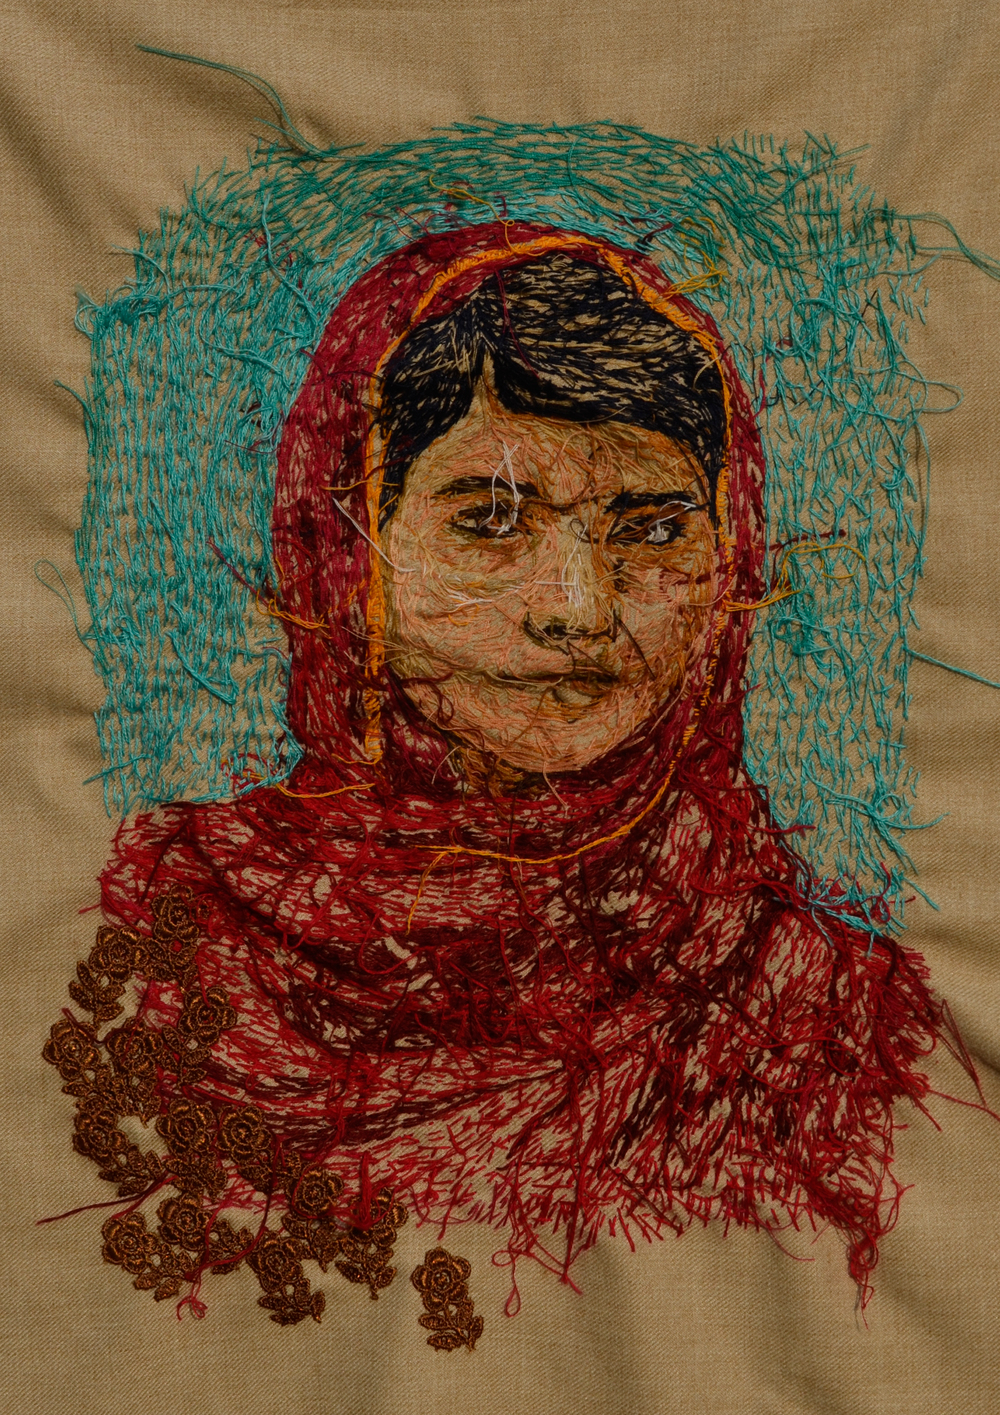 Untitled, 2014 Embroidery on Fabric 20 x 16 in.